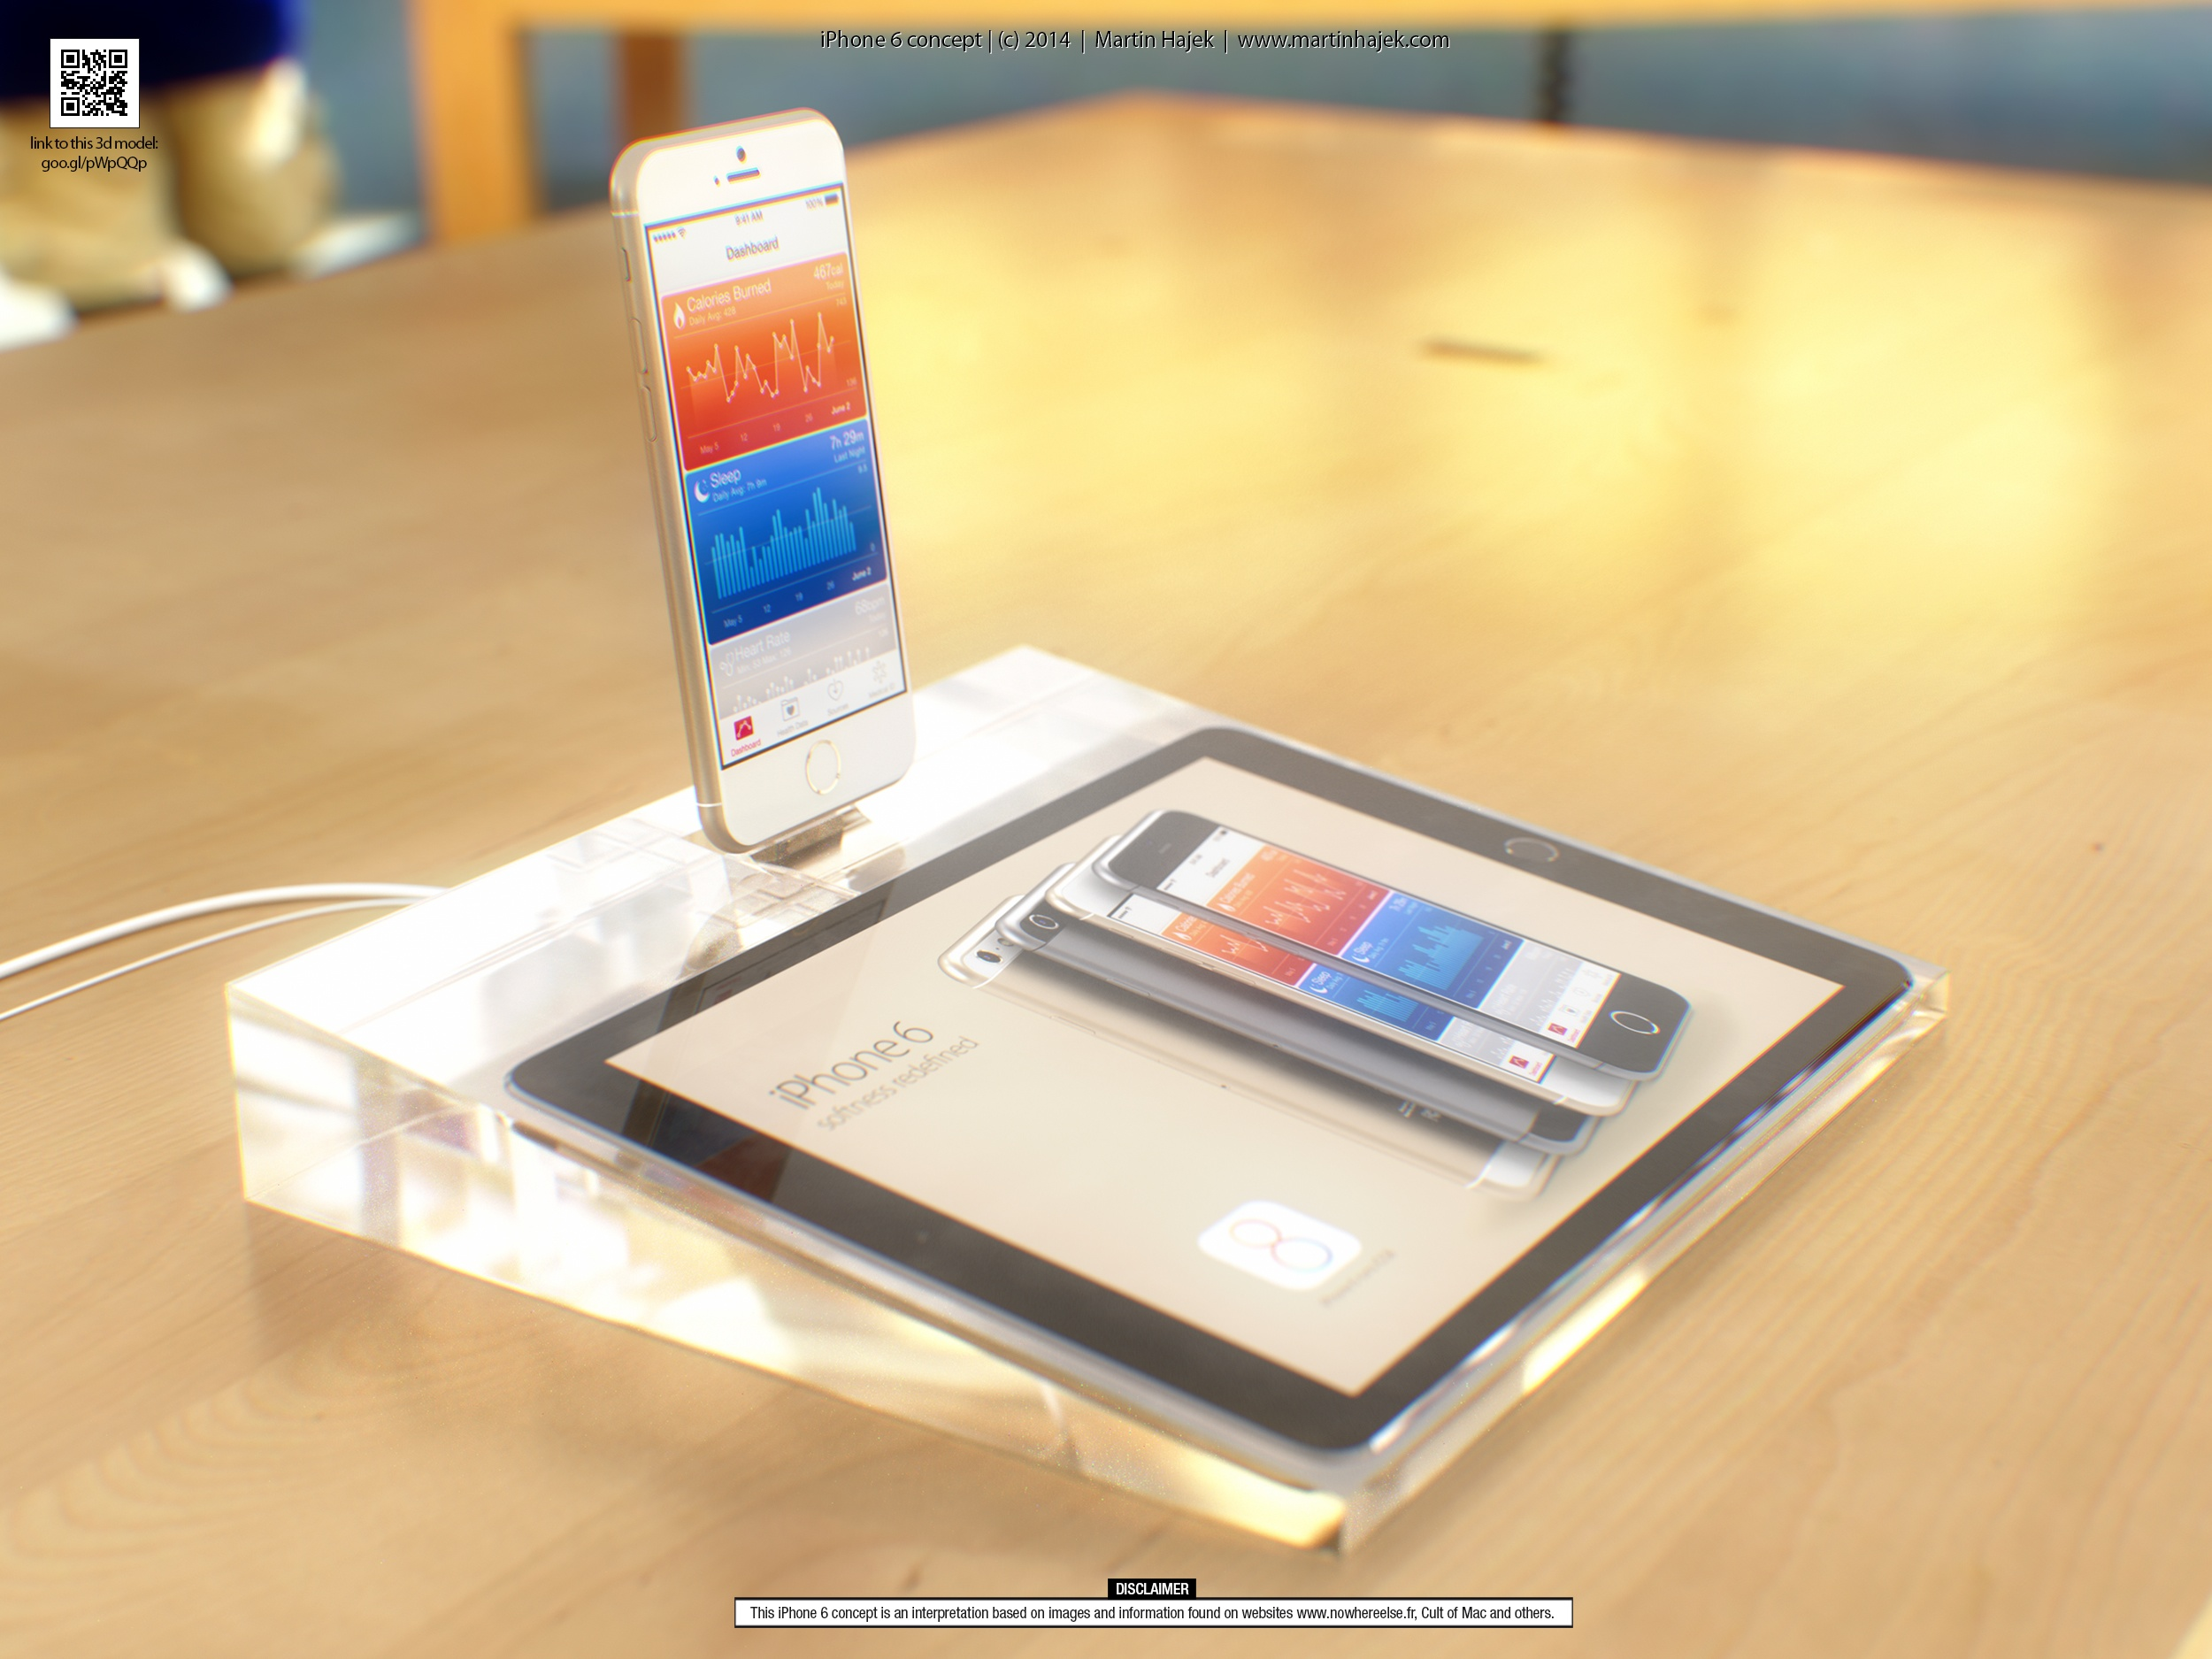 iPhone 6 concept (Apple Store, Martin Hajek 002)